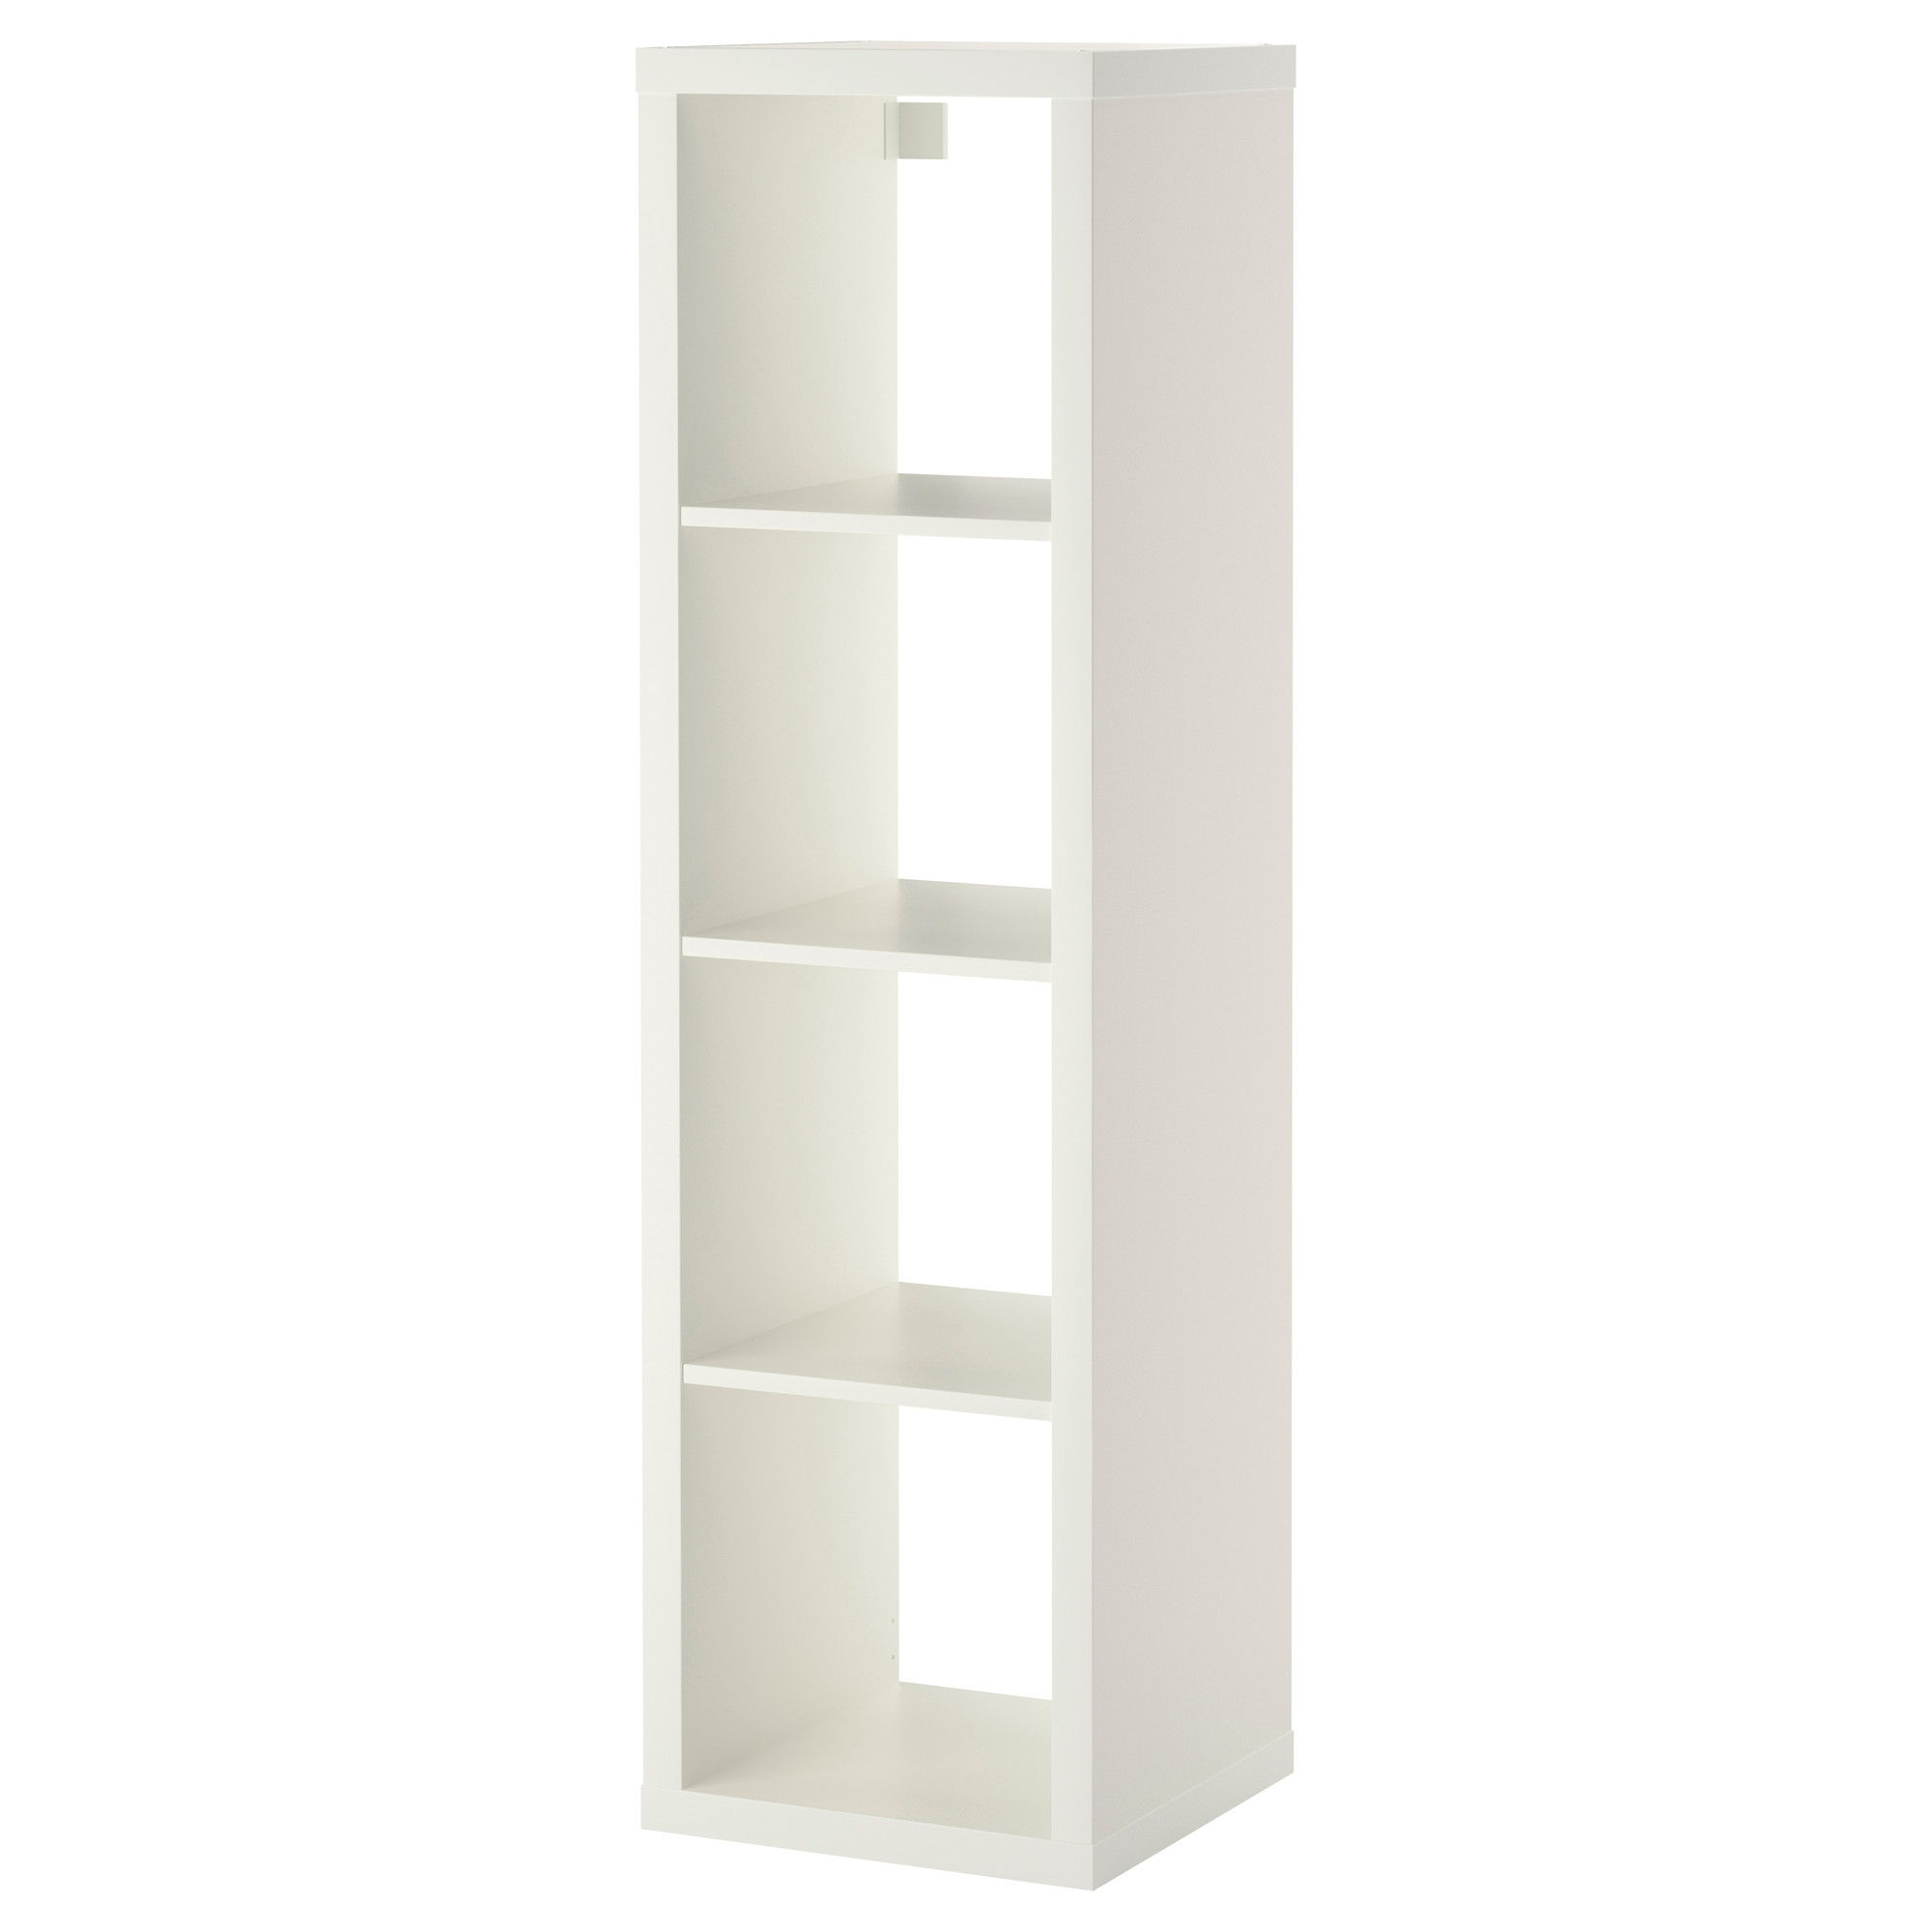 Kallax Shelf Unit Birch Effect Ikea Throughout White Shelving Units (#4 of 15)